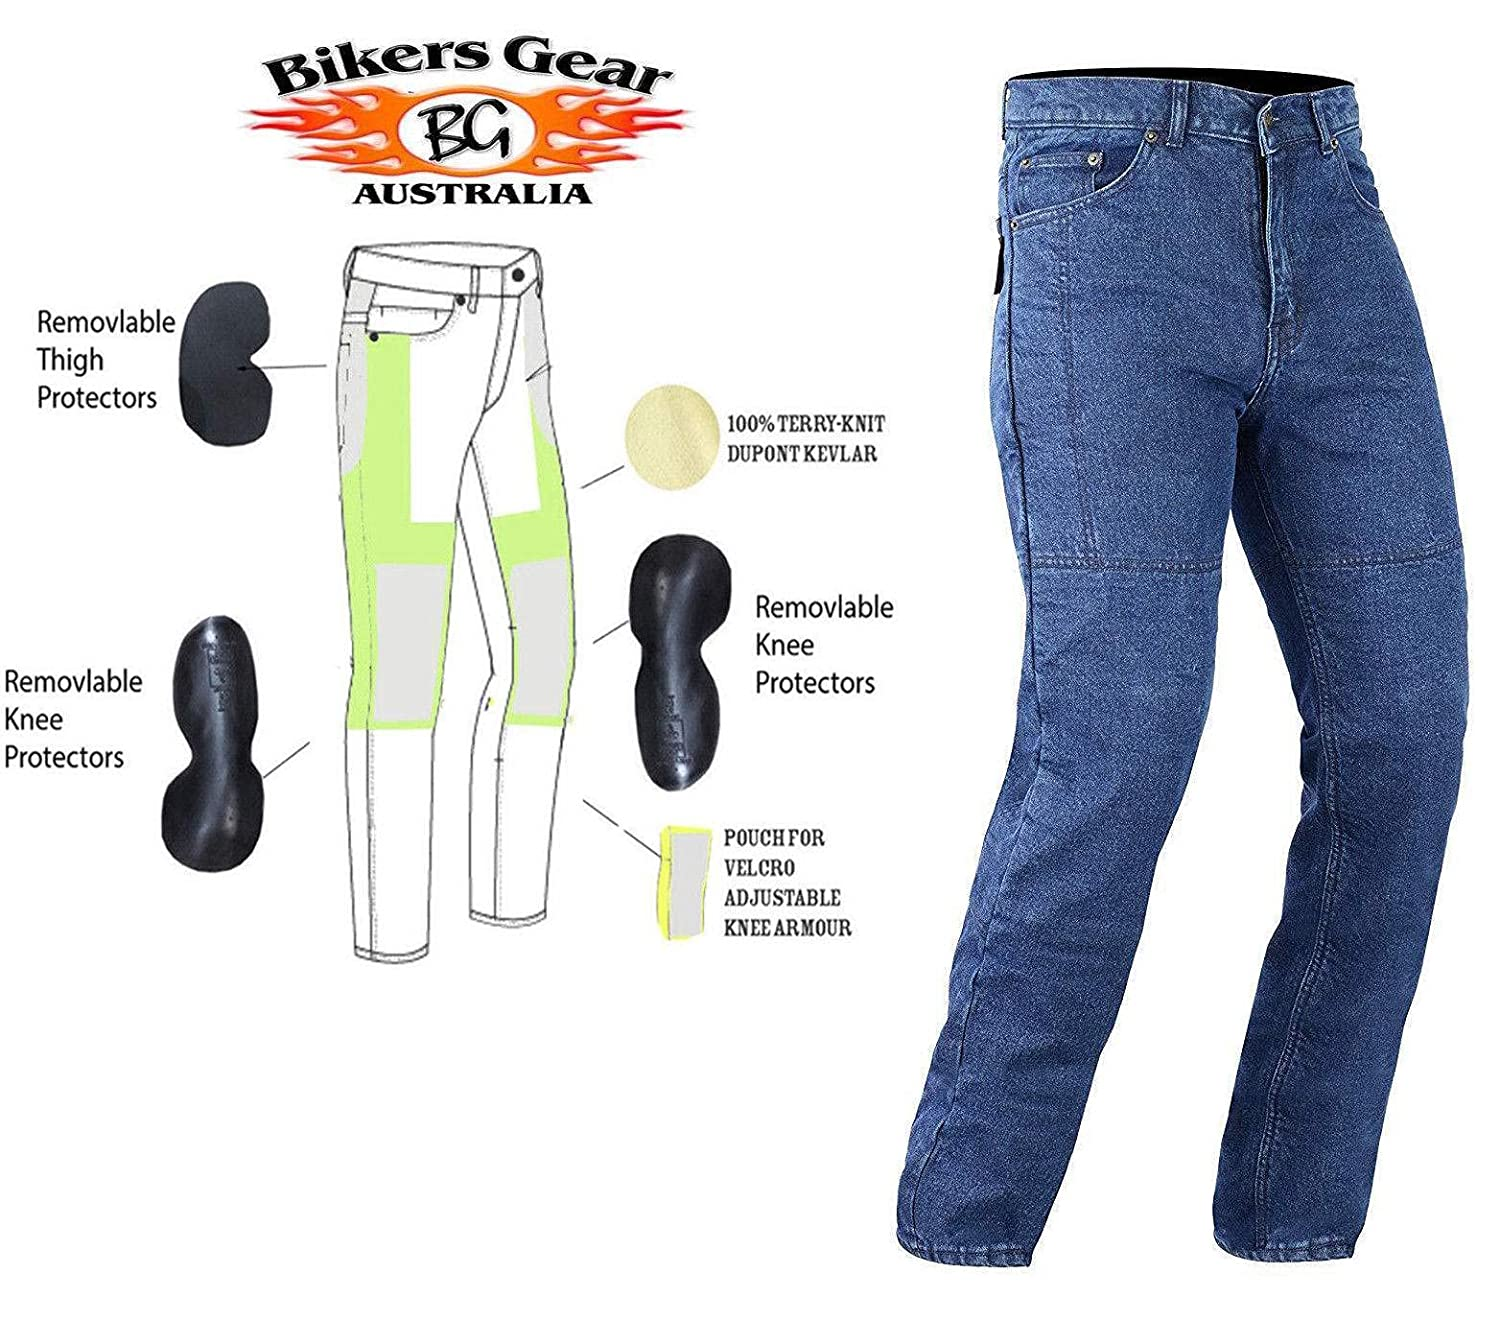 Grey Camo Bikers Gear Australia Kevlar Lined Protective Motorcycle Cargo Trouser Kevlar Jeans with Removable CE1621-1 Armour Size 38R